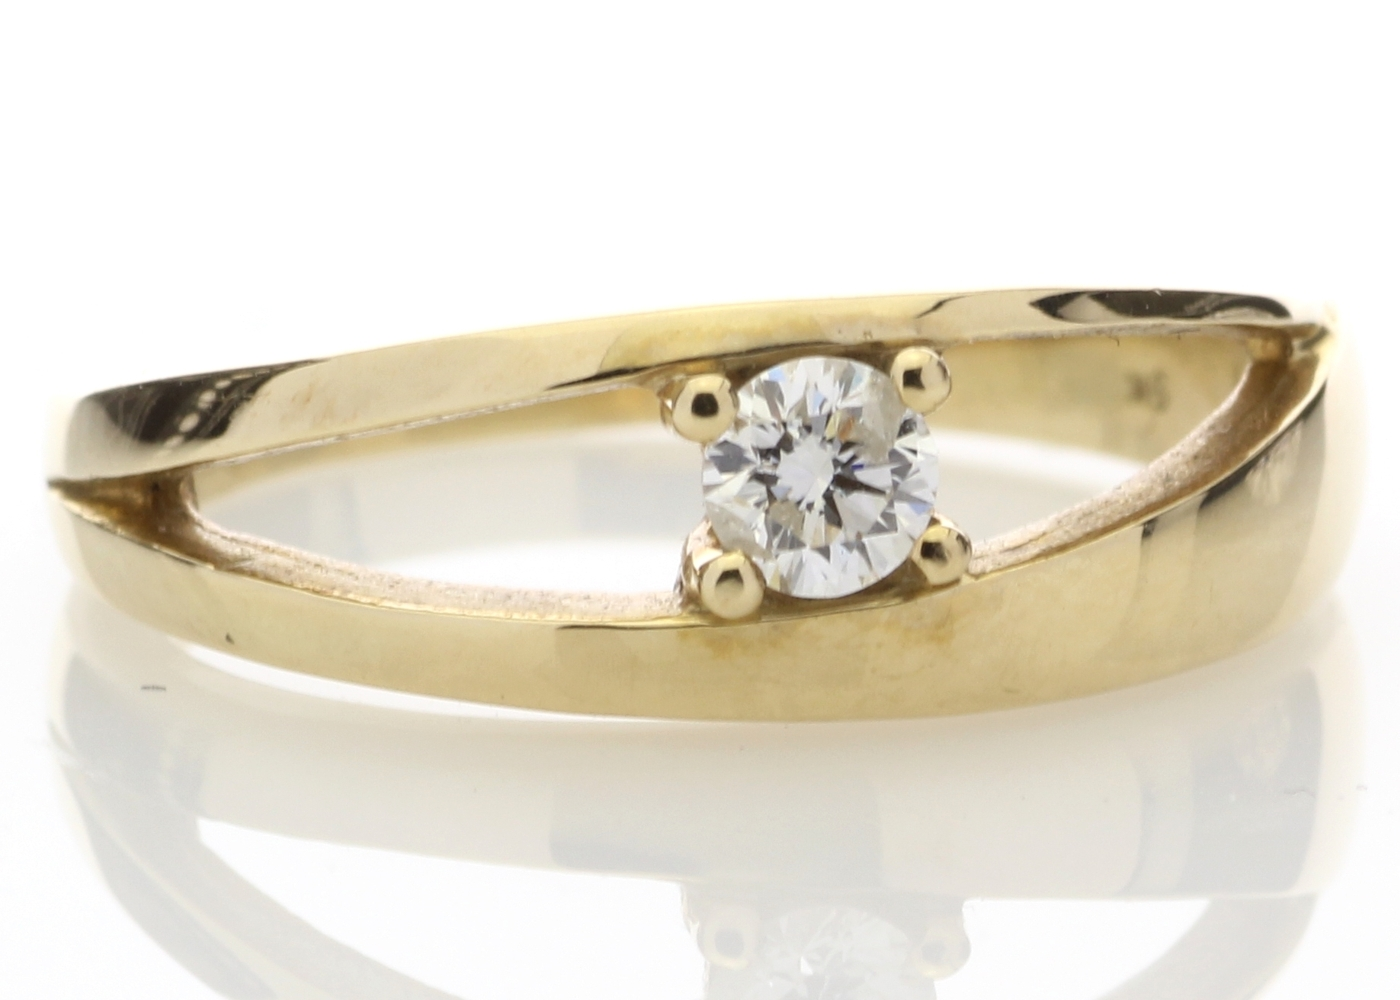 9ct Yellow Gold Claw Set Diamond Ring 0.18 Carats - Image 4 of 4